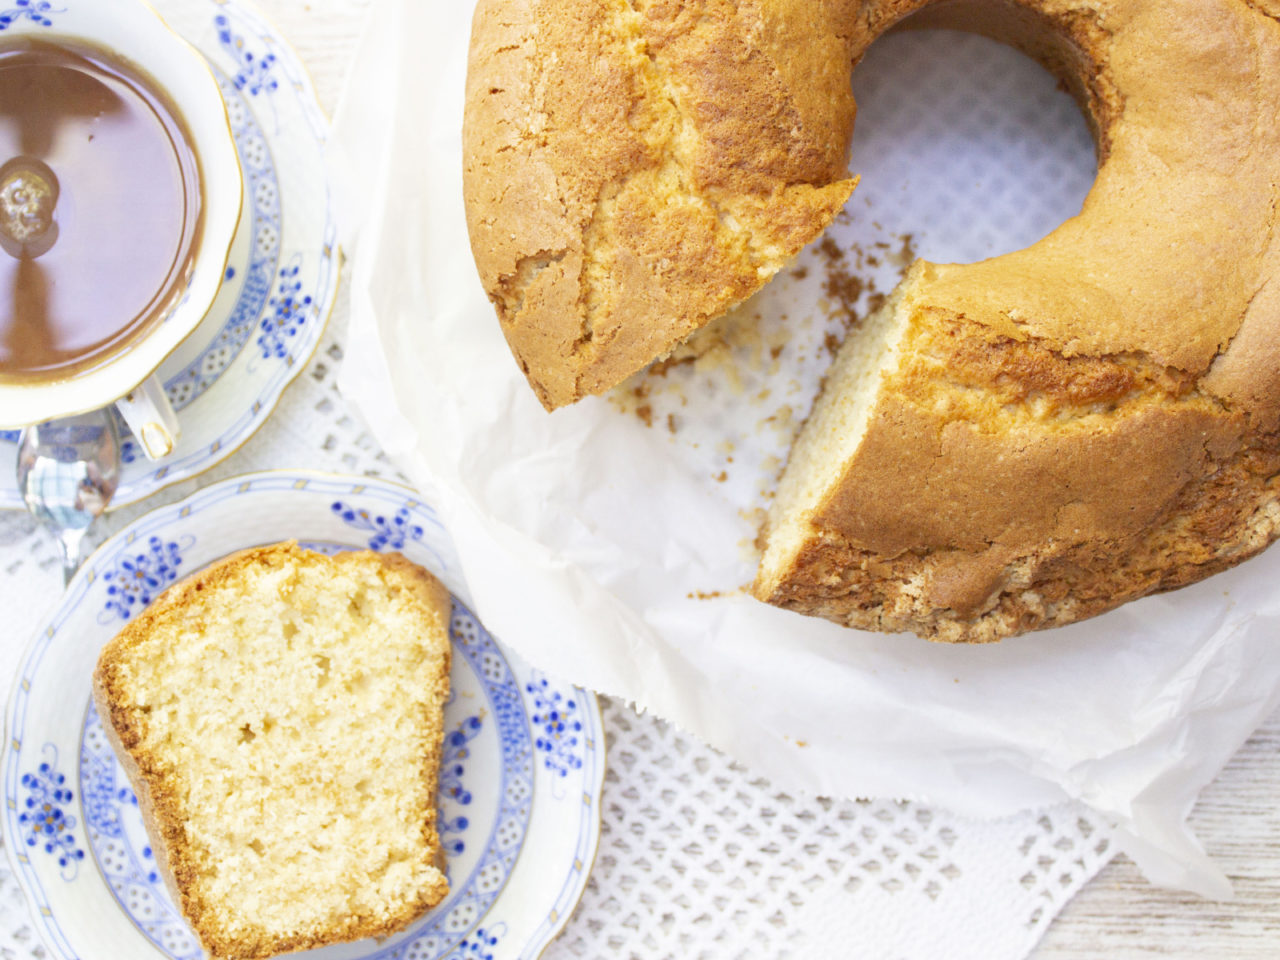 7 Cakes that go very well with tea